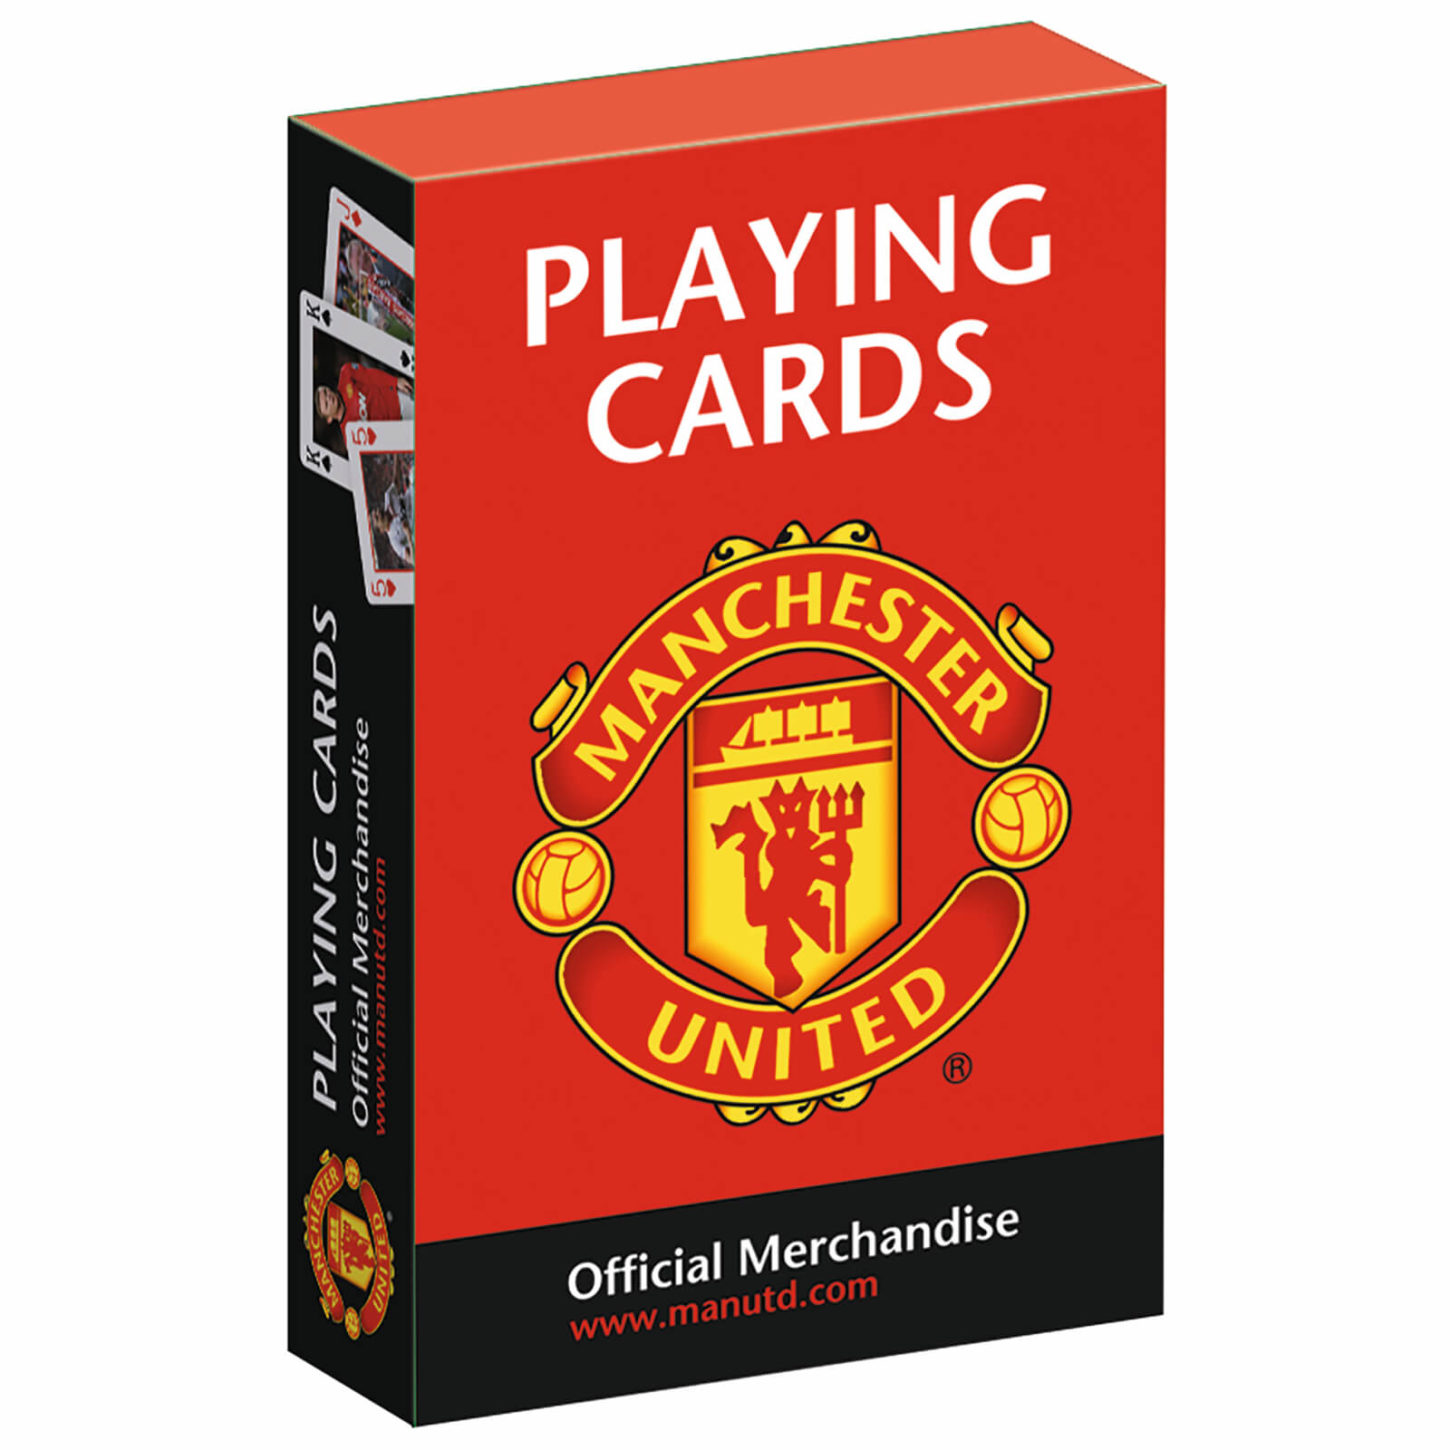 Waddingtons No1 Playing Cards - Manchester United